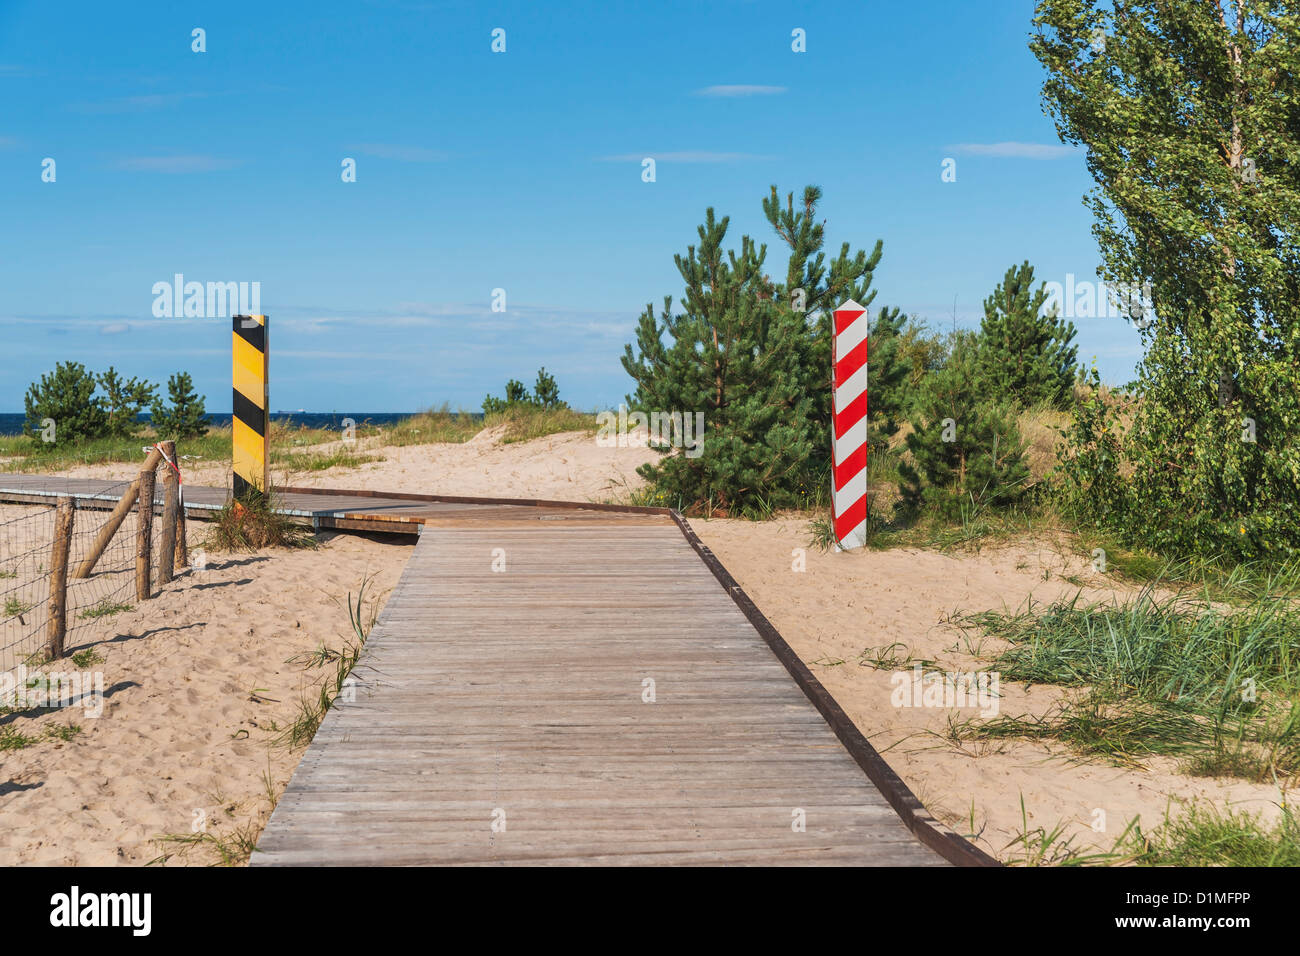 Usedom Island, Border between Ahlbeck, Germany and Swinoujscie, Poland in Europe - Stock Image